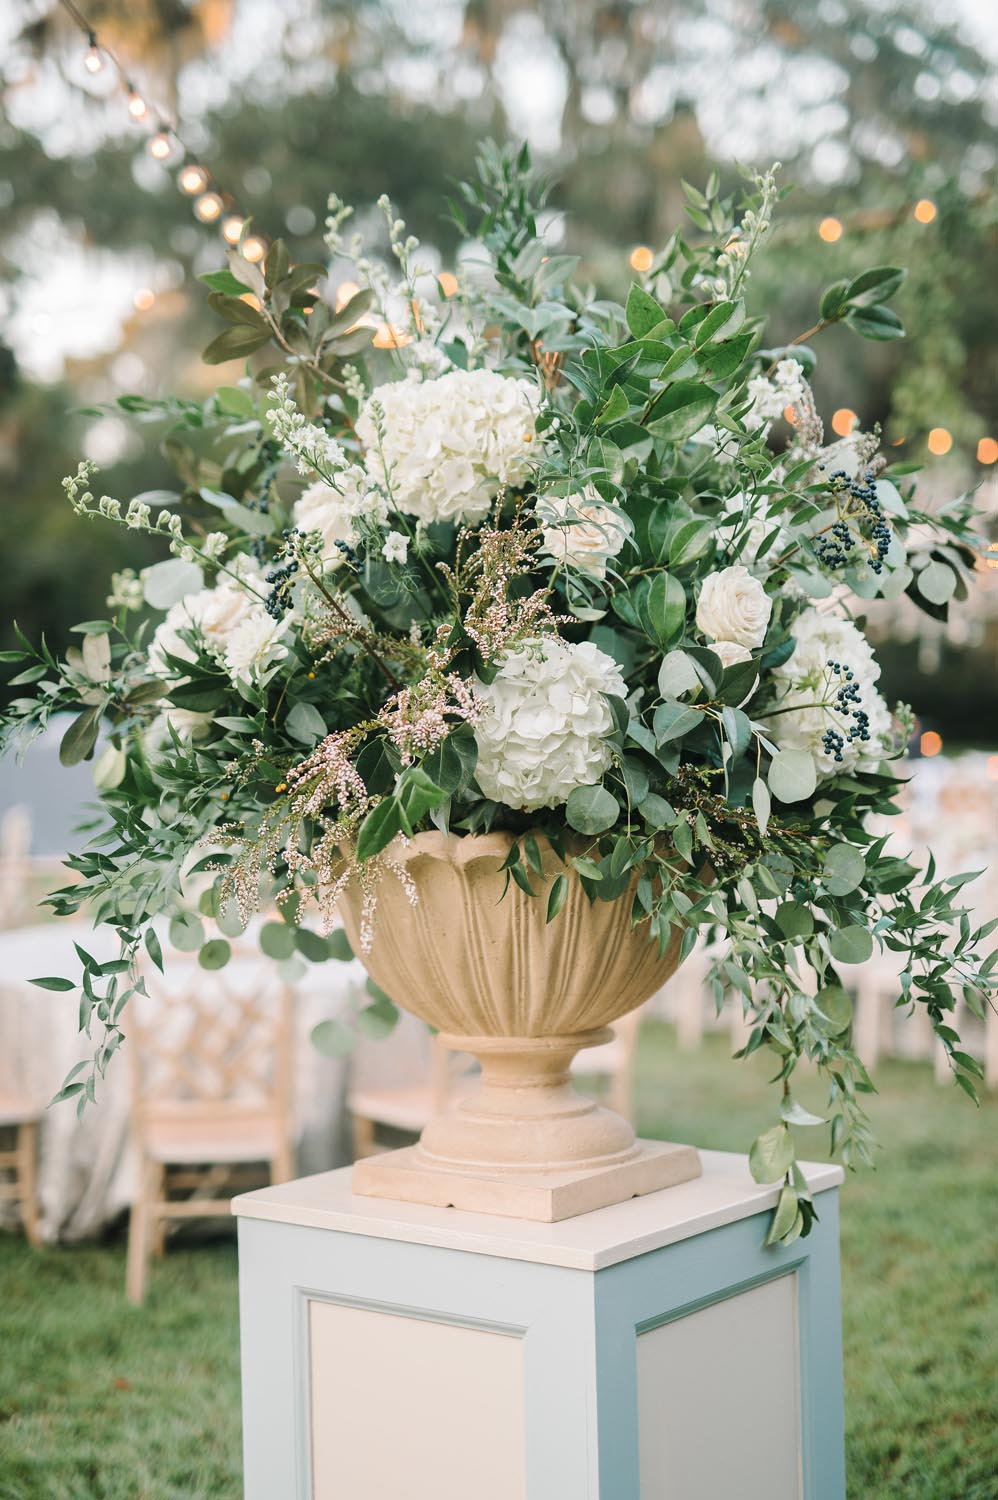 The colors in this wedding were the ideal complement to our sultry textures of velvet, wood and floral lace. Wedding planning and design by A Charleston Bride